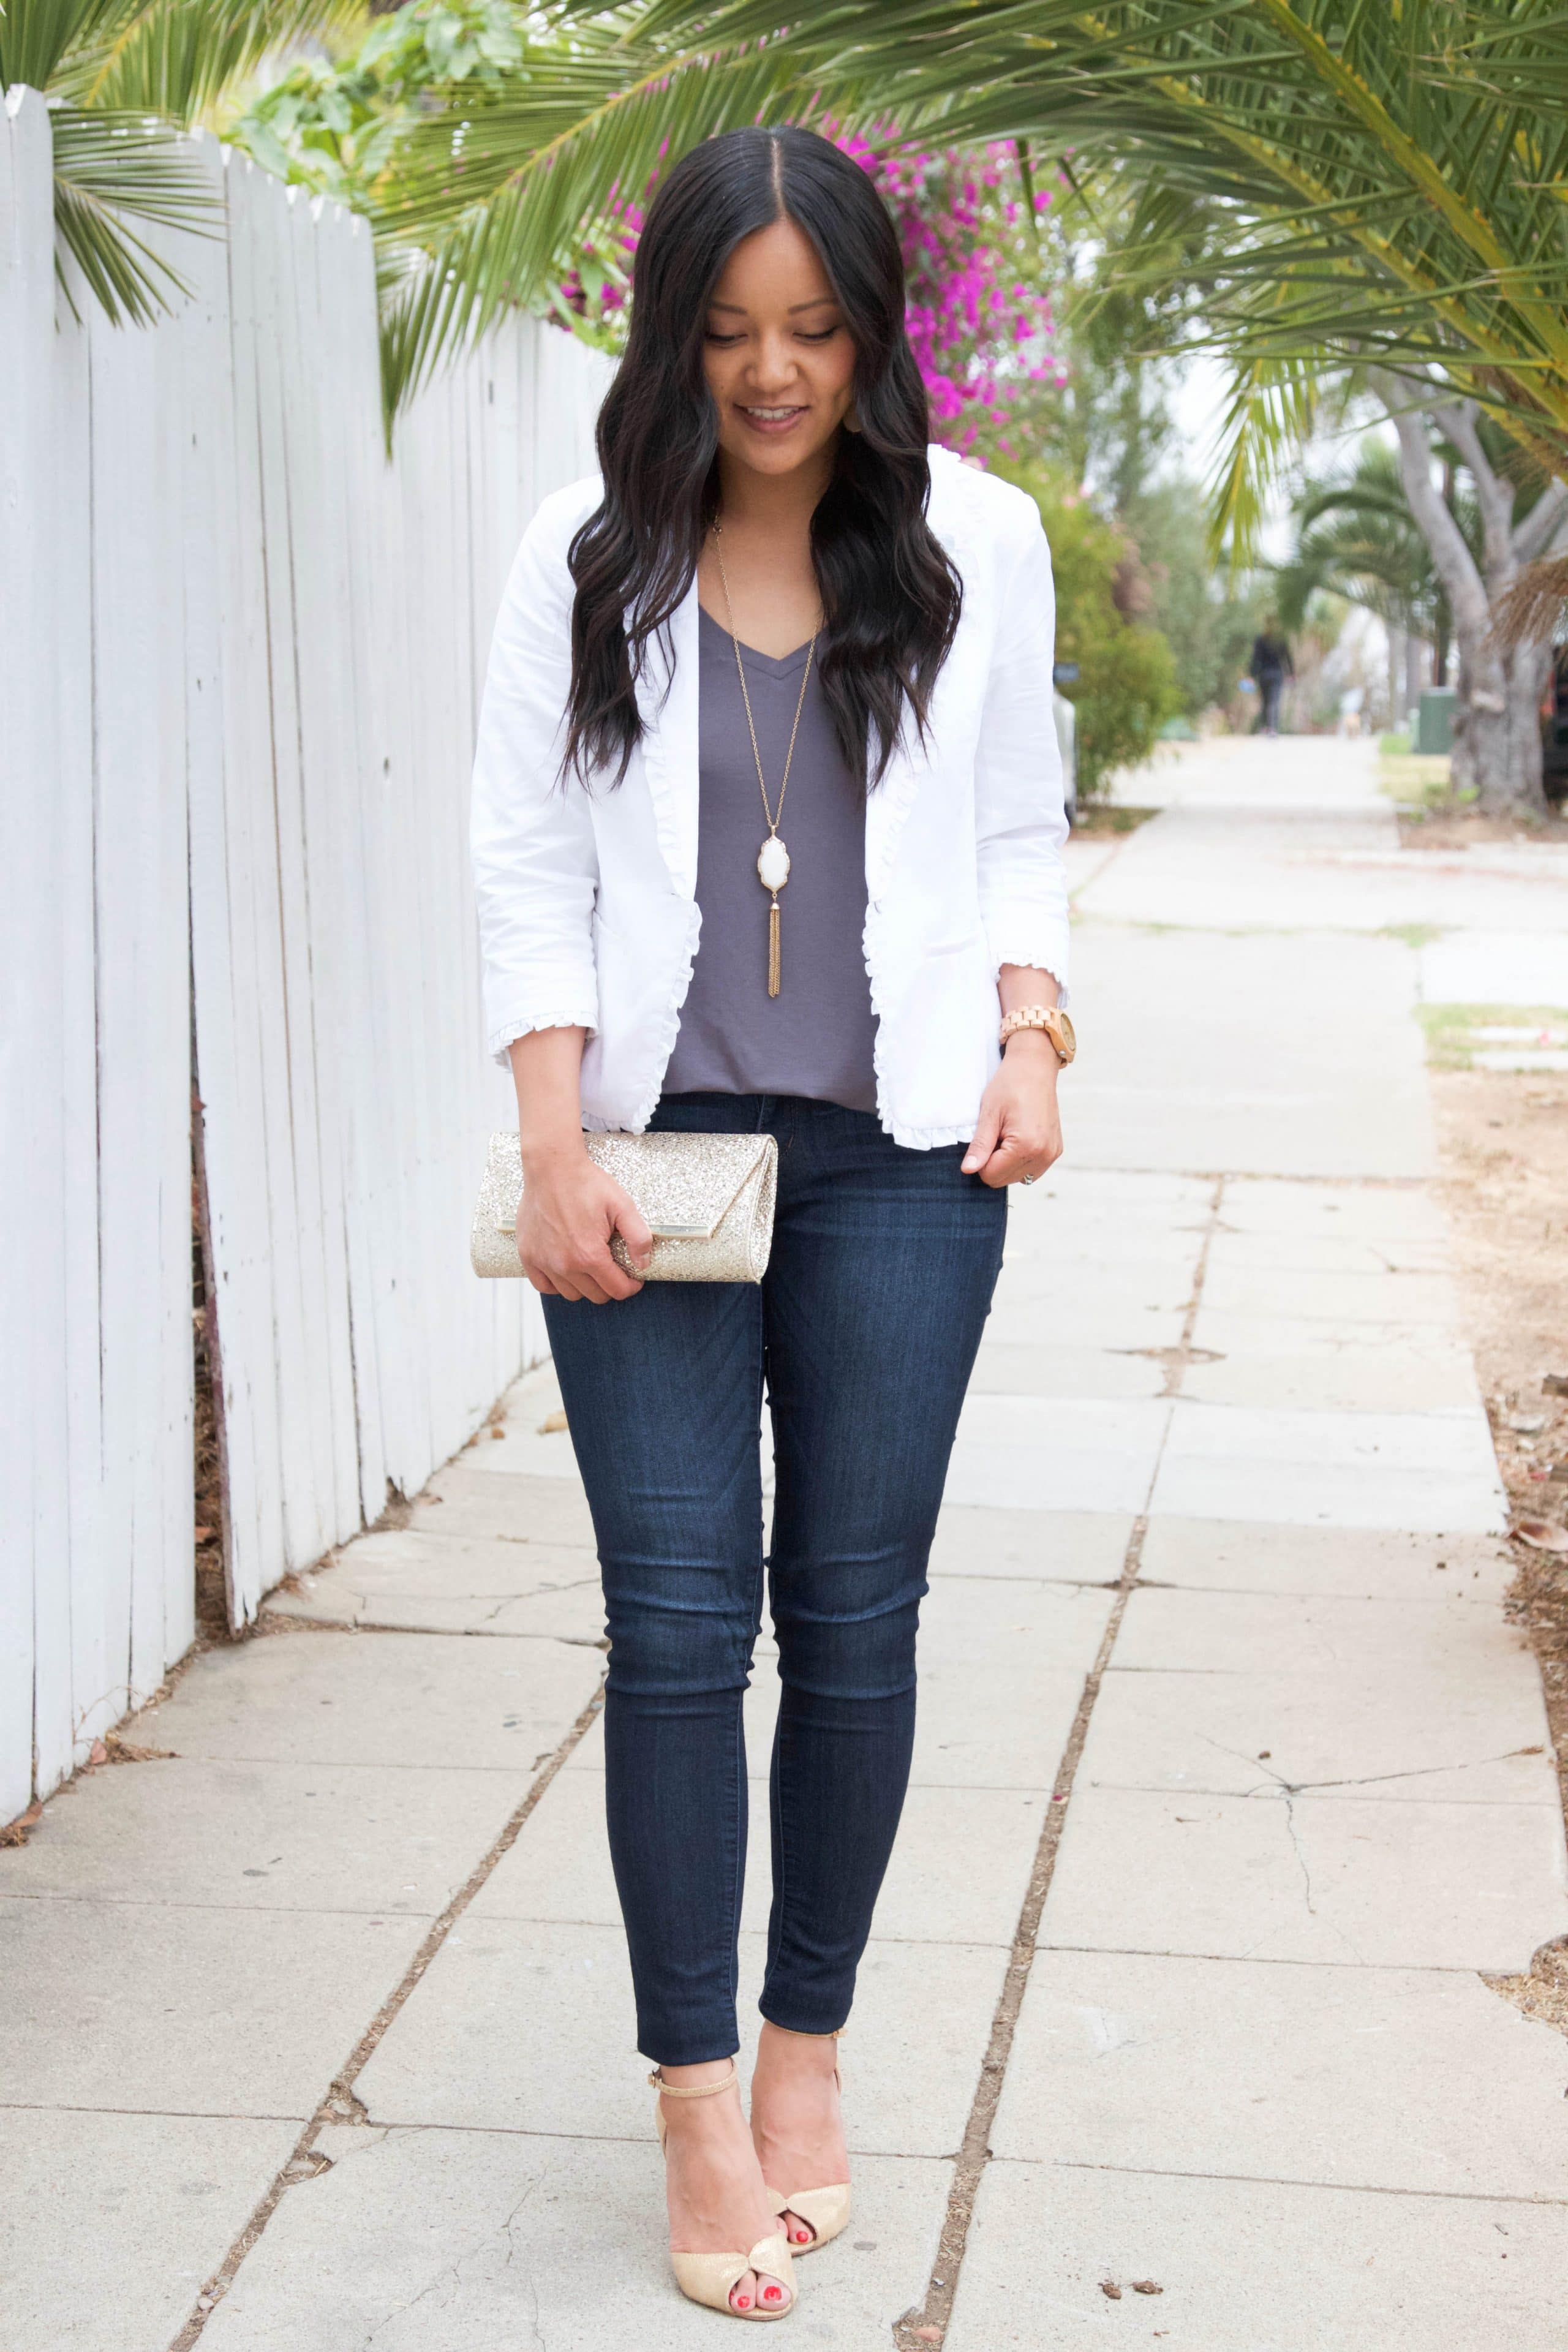 White Blazer + Skinnies + Gold Pumps + Gold Clutch + White Necklace